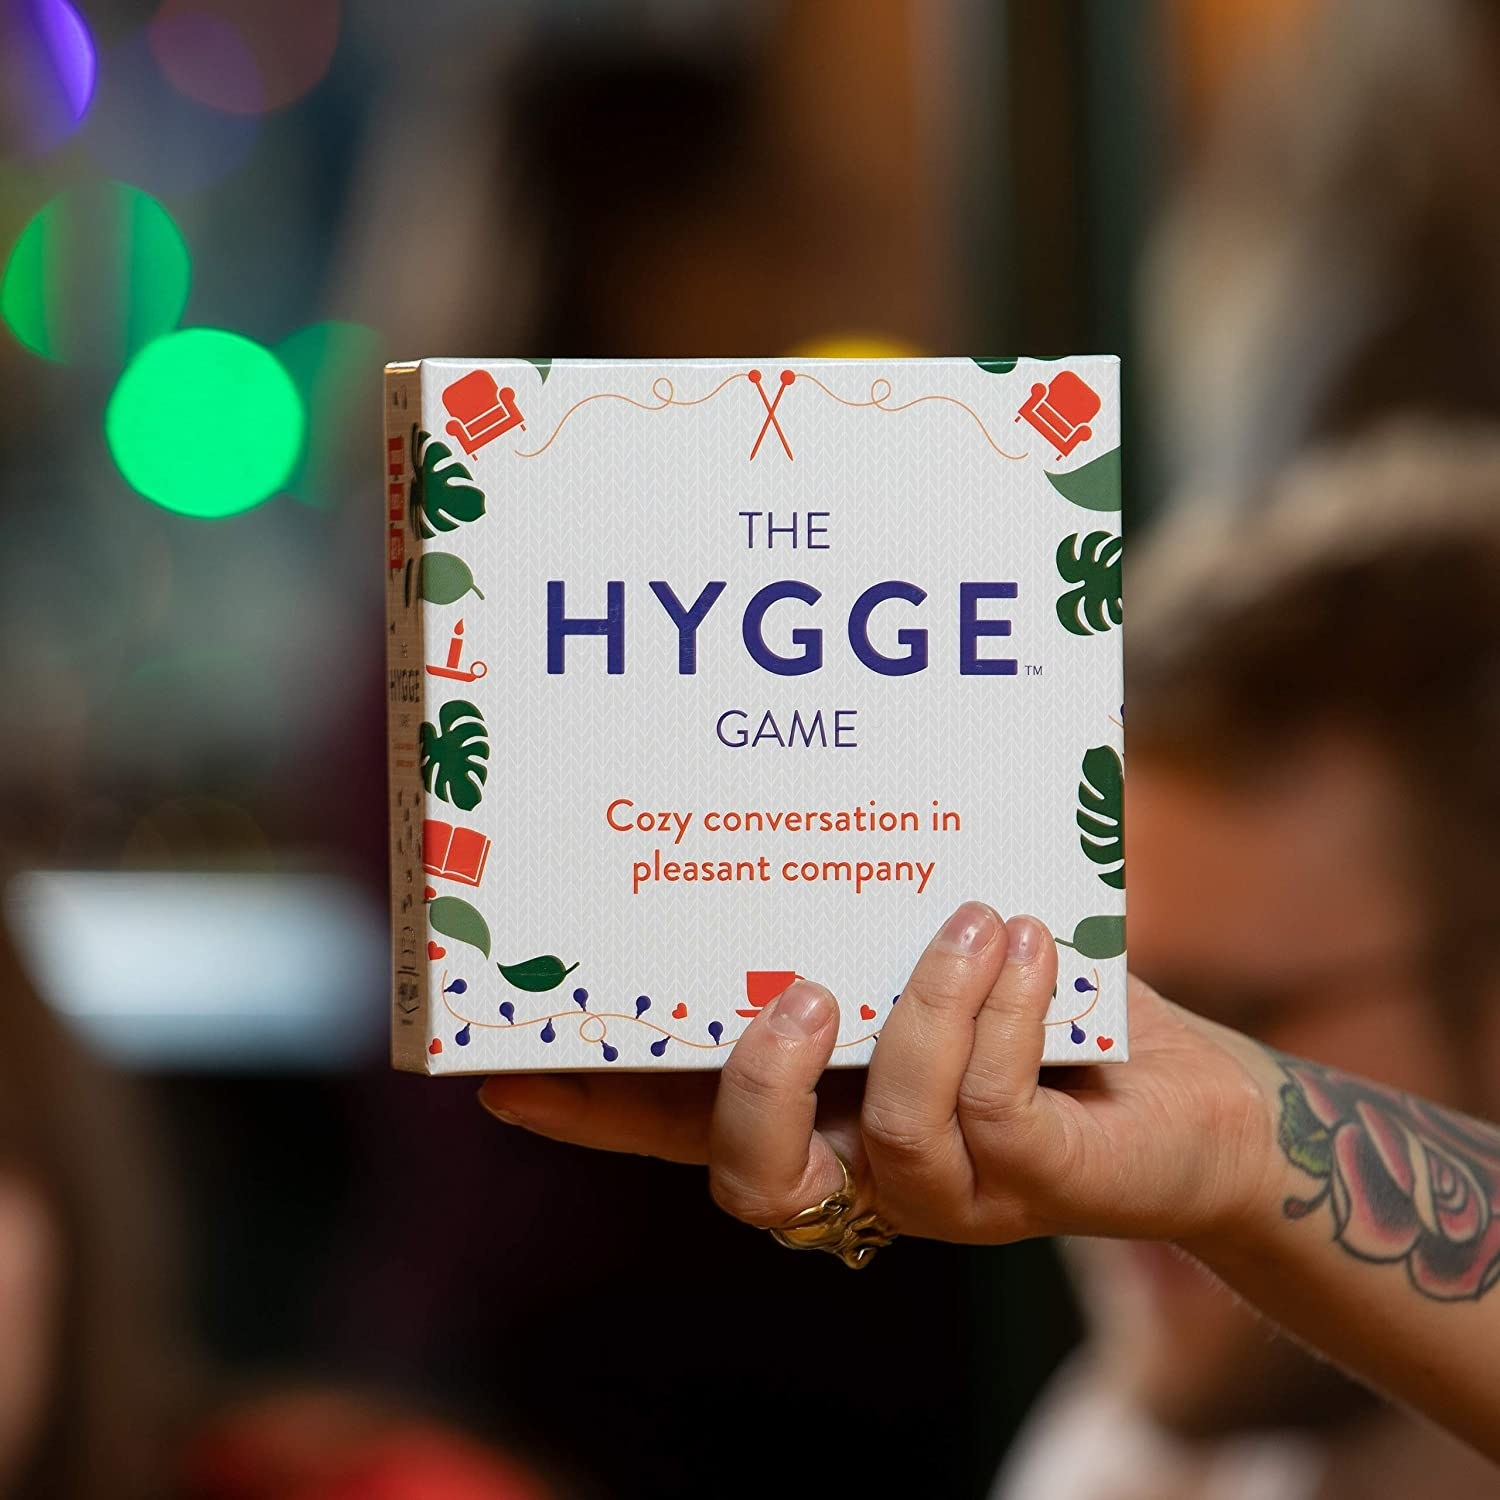 person holding the Hygge game box